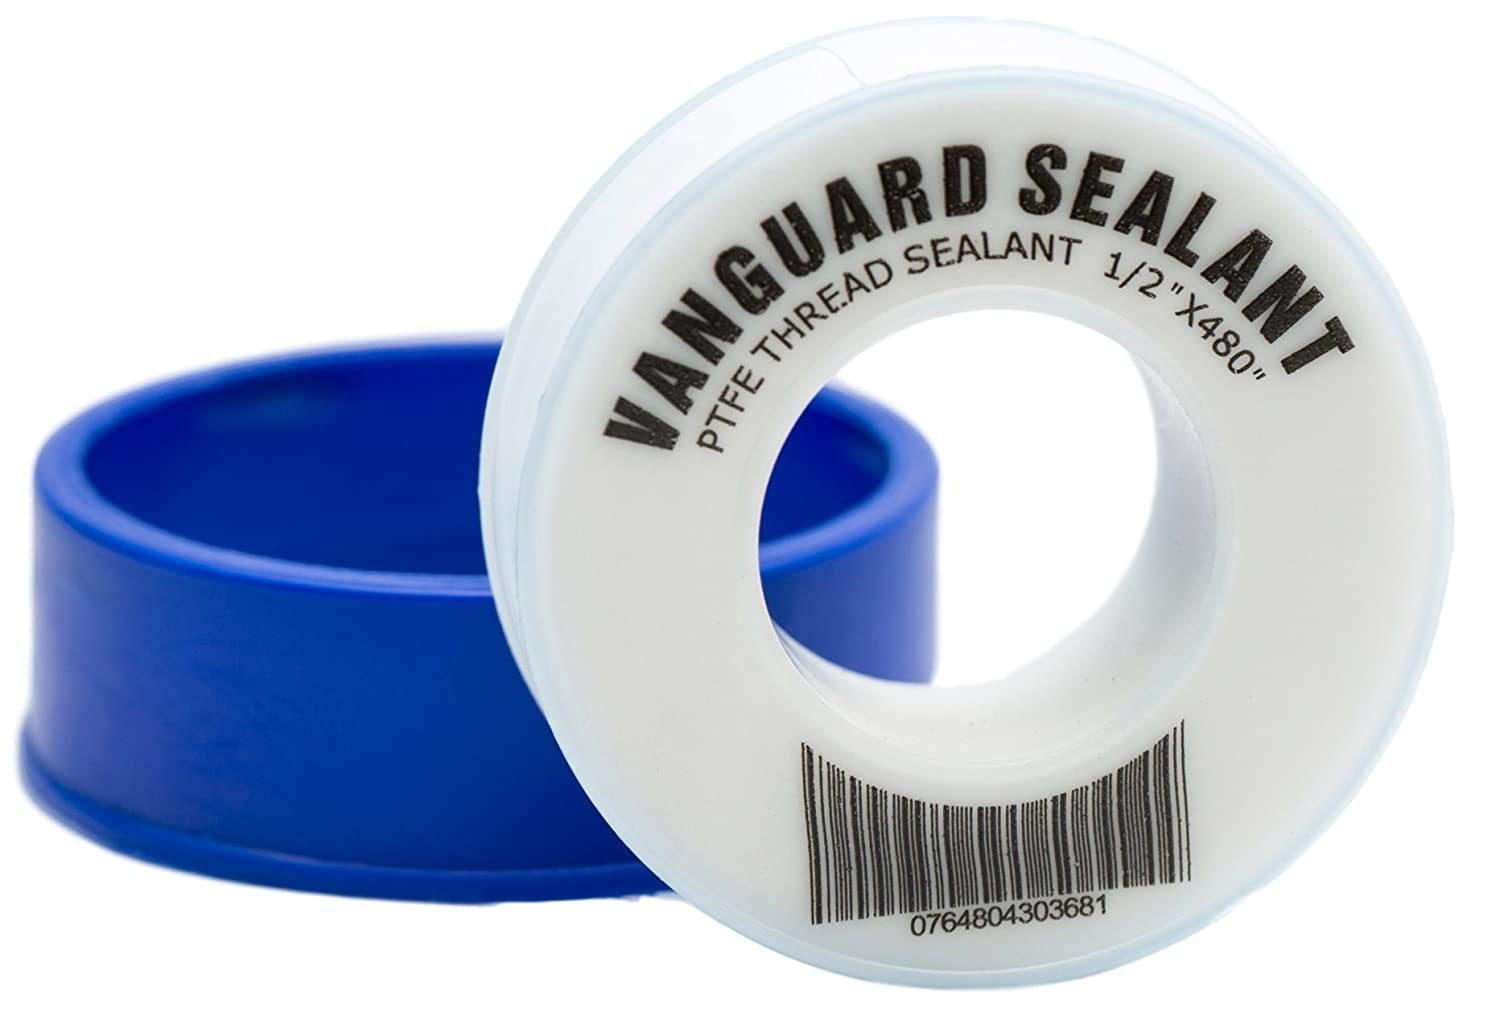 "PTFE Plumbers Water Sealant Thread Tape 460"" Length 1/2"" Width White 1 Pack by Vanguard Sealants Perfect for Shower Heads and Pipe Threads"